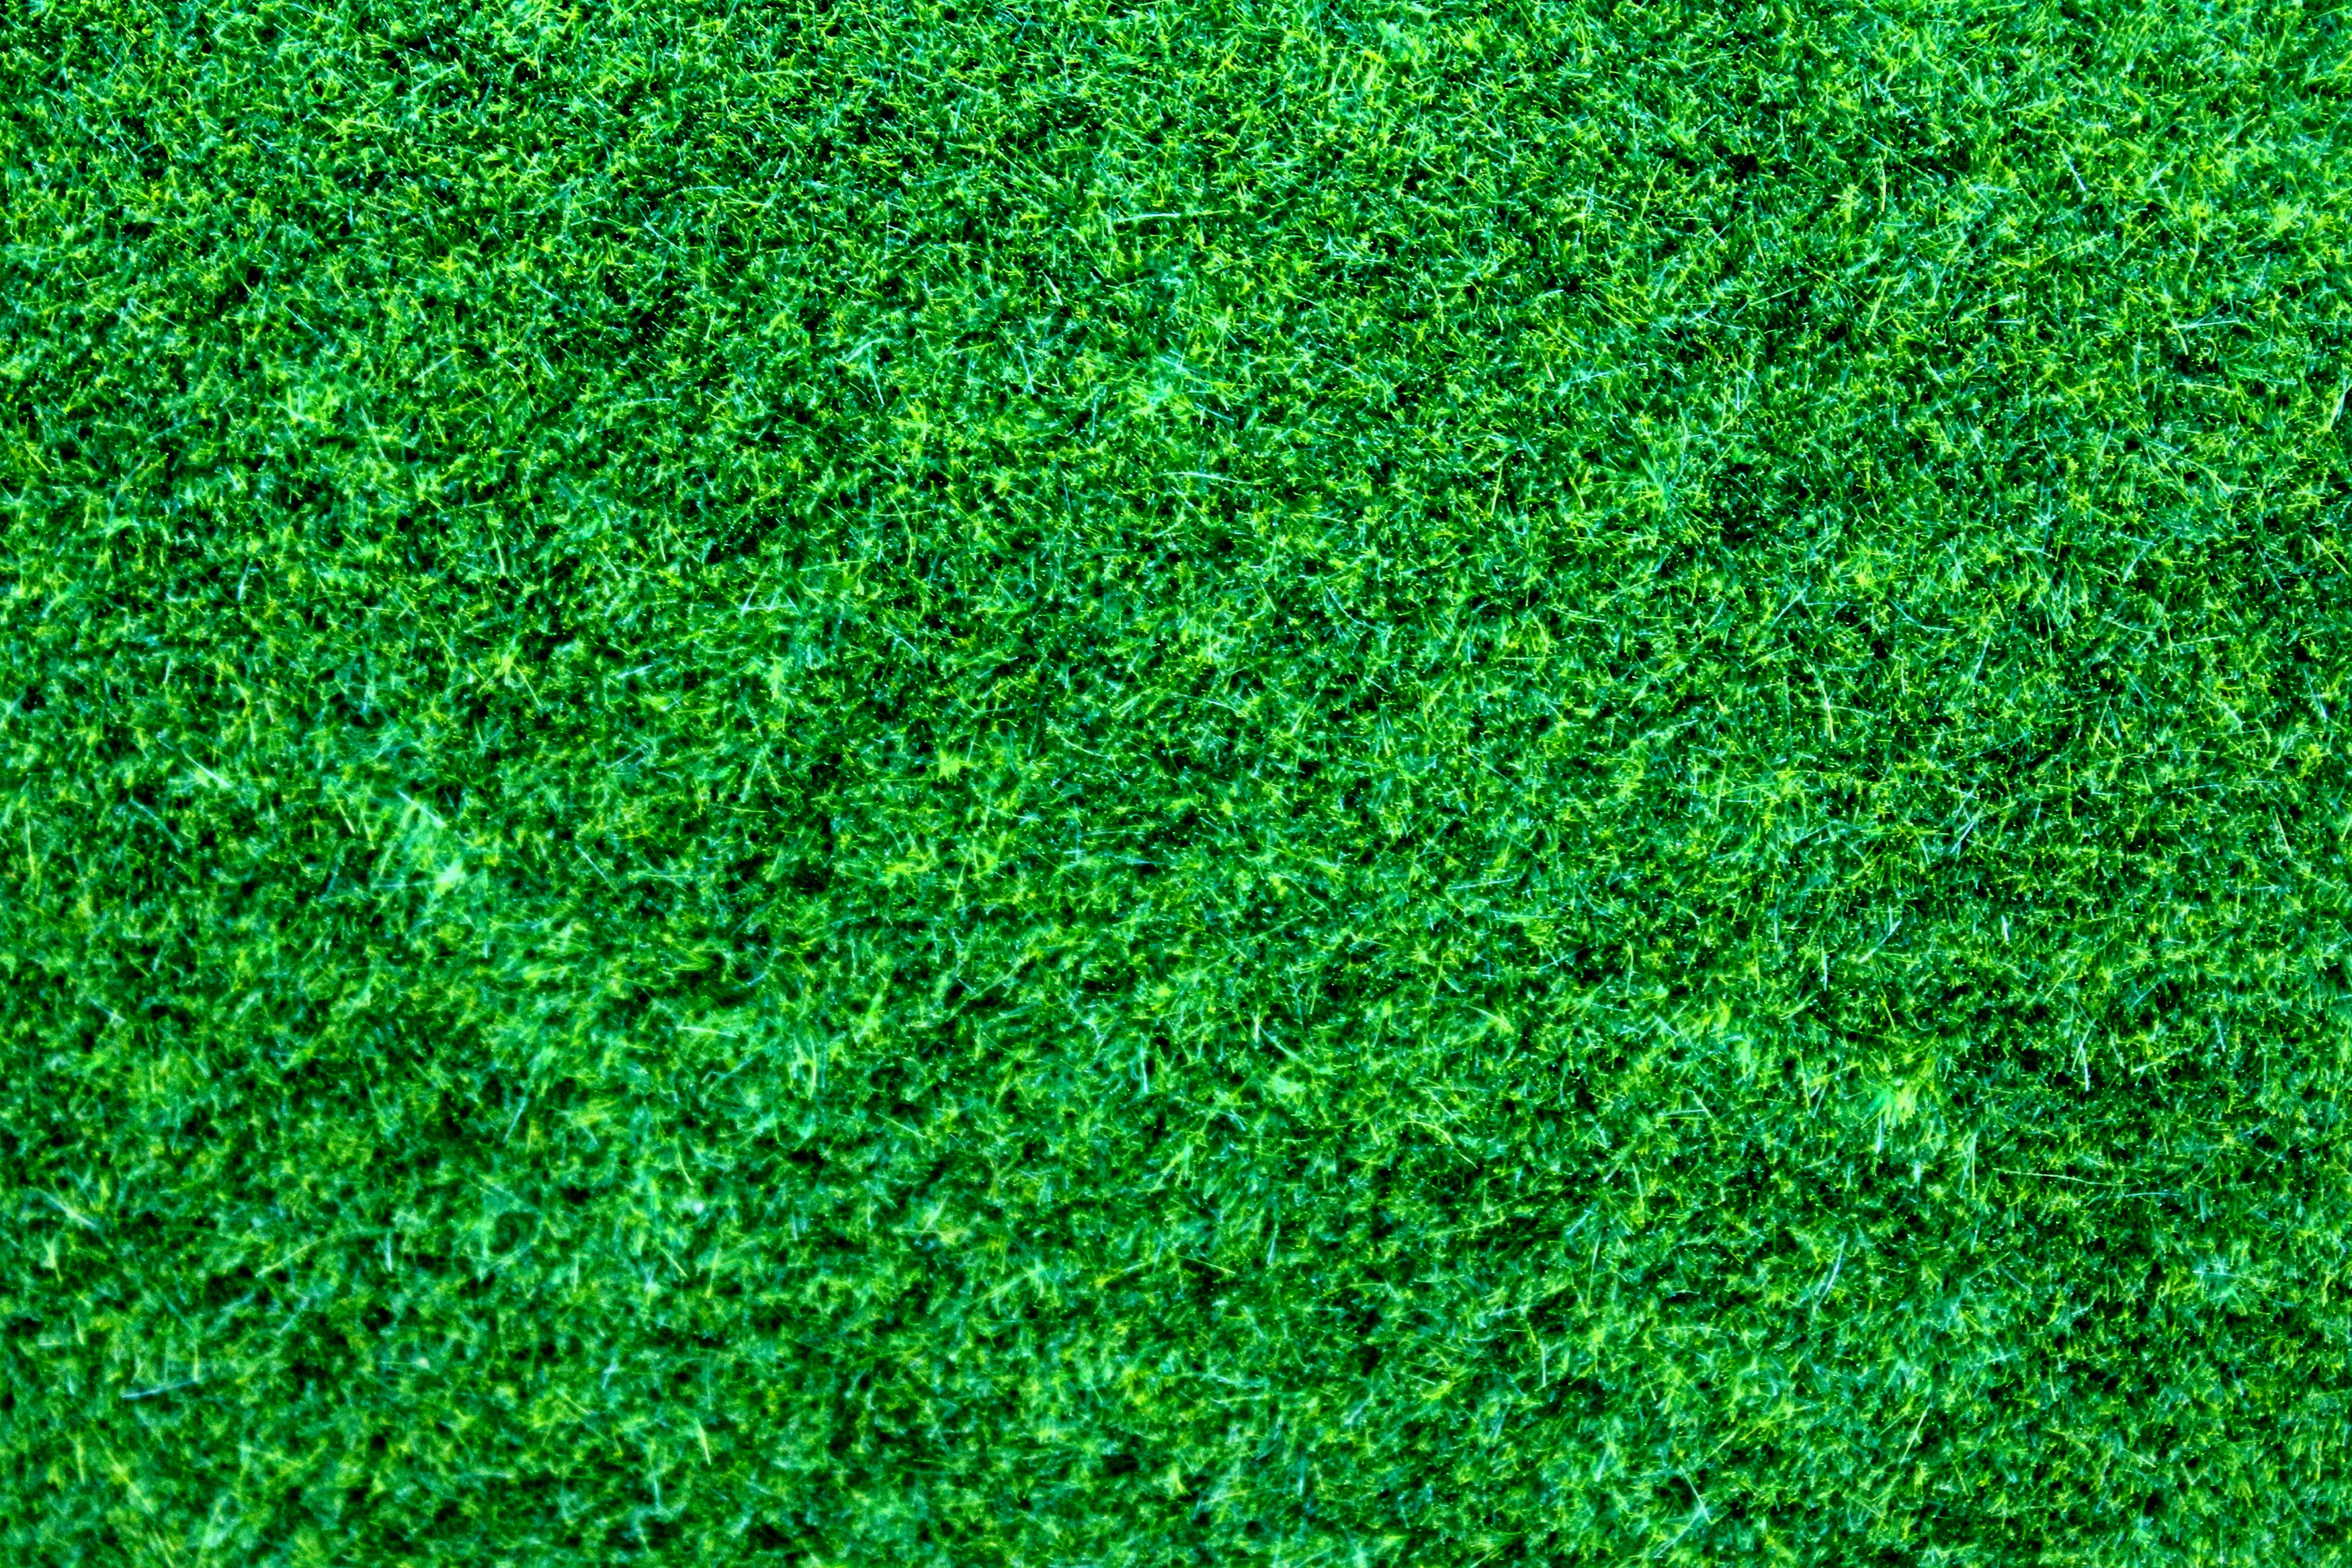 Free stock photo of grass, leaves, green, foliage